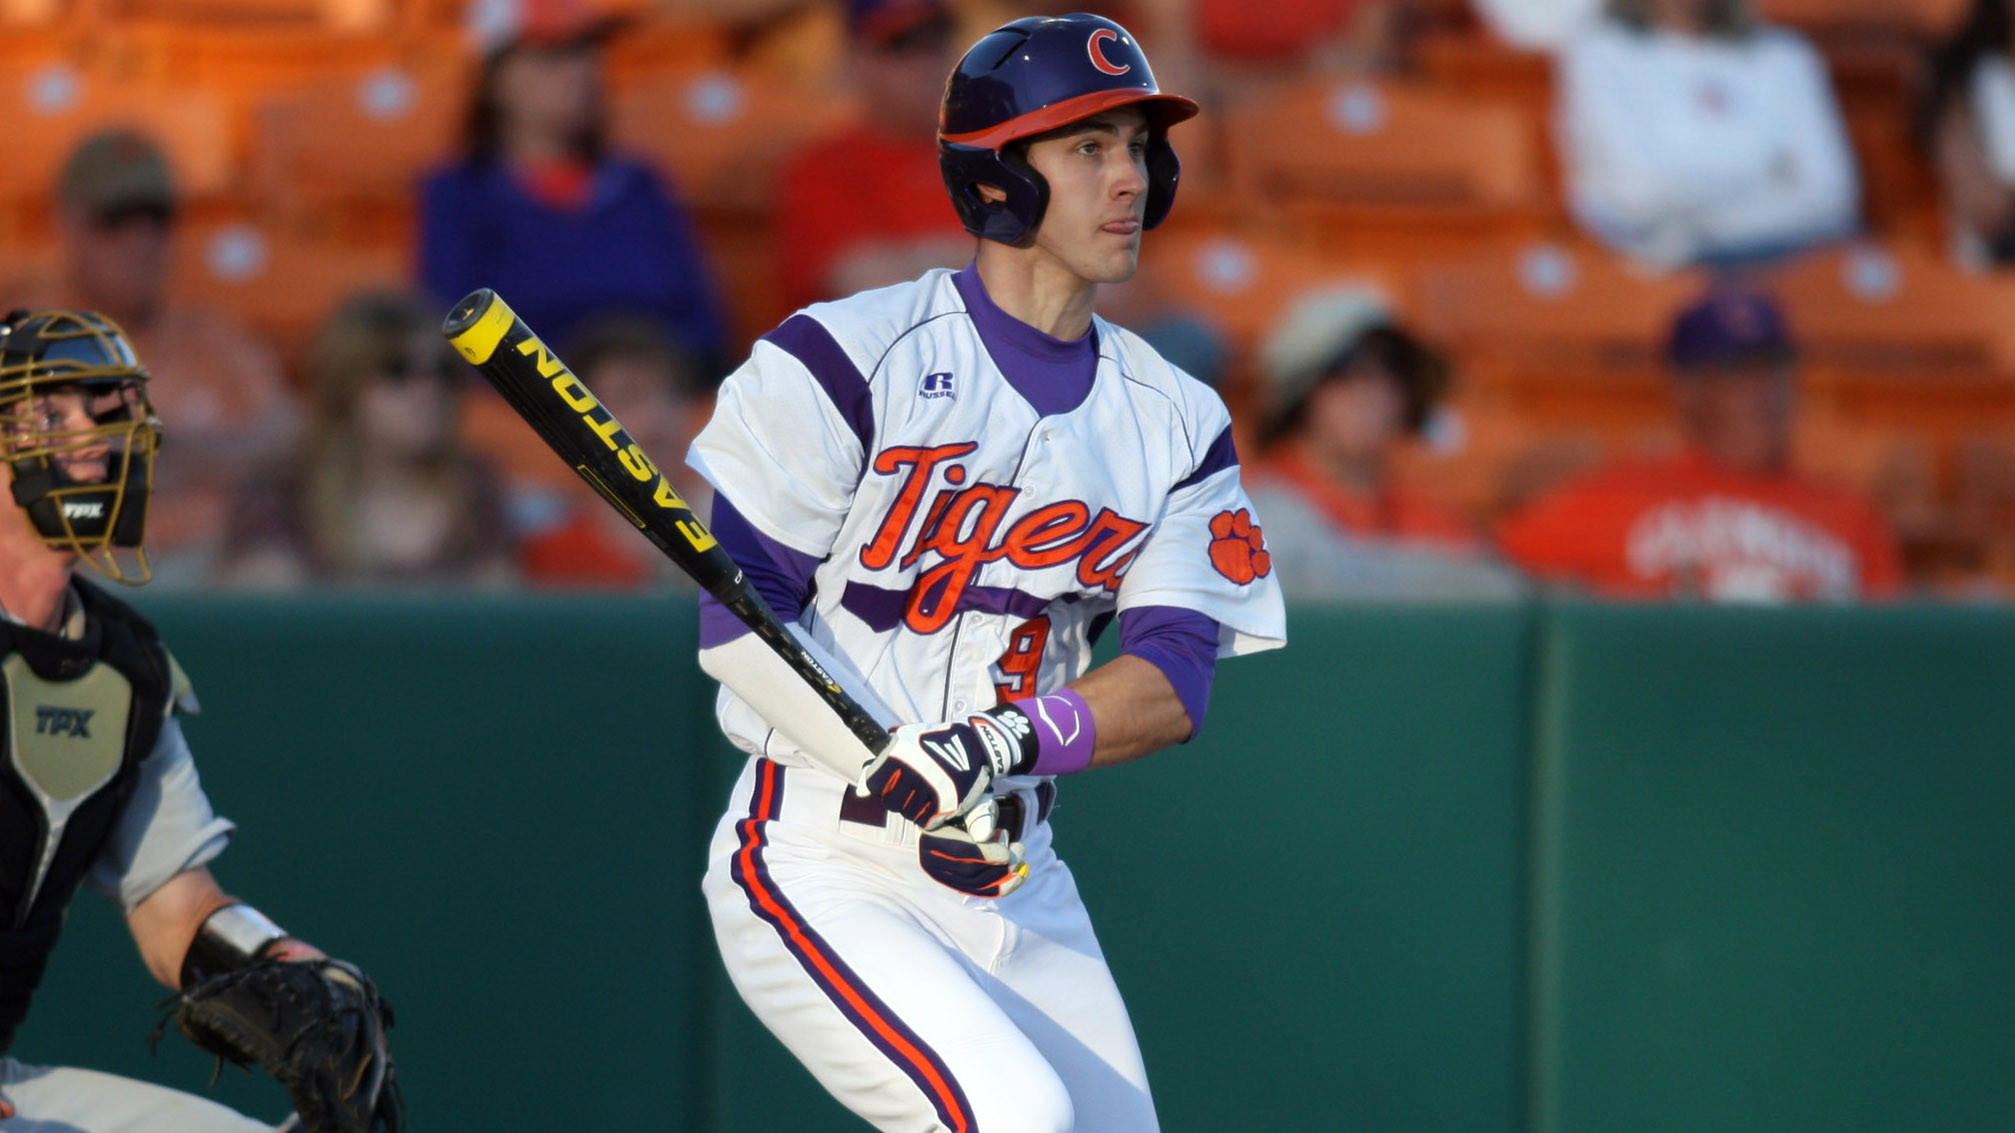 Duggar's Walkoff Homer in 11th Lifts #17 Tigers to 6-4 Win Over Wake Forest Sunday